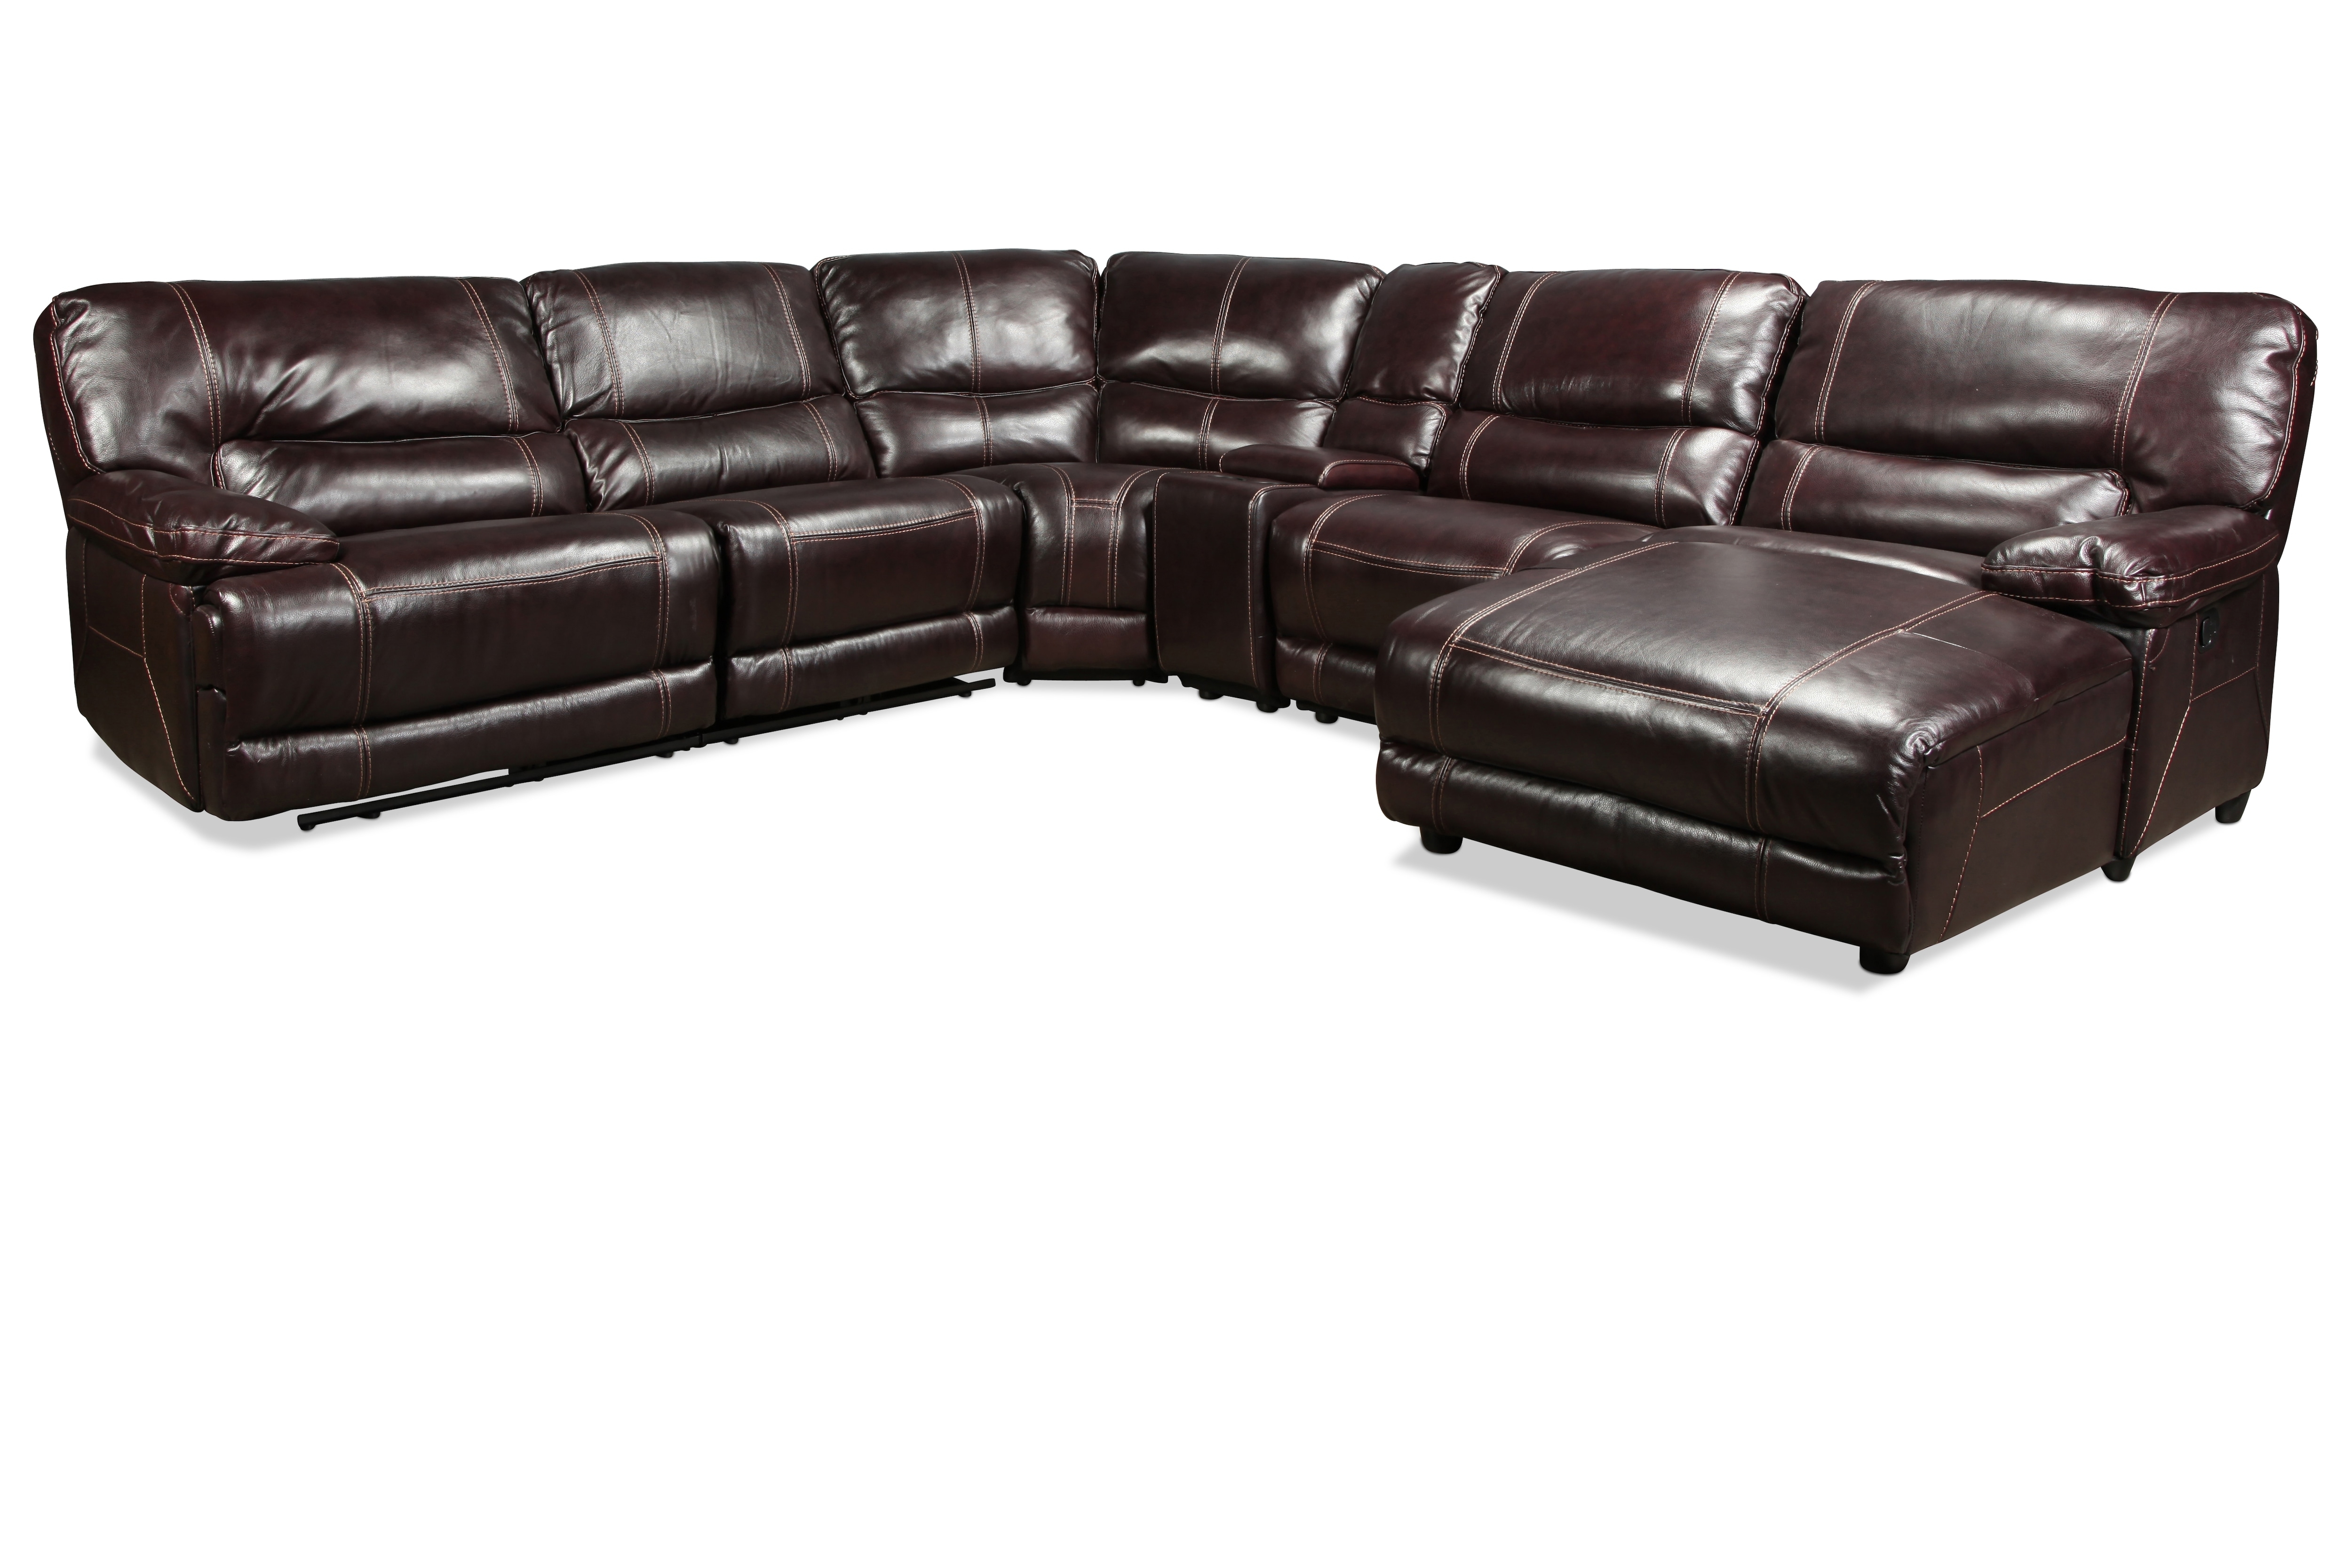 Sectionals | Levin Furniture Inside Tatum Dark Grey 2 Piece Sectionals With Laf Chaise (Image 16 of 25)